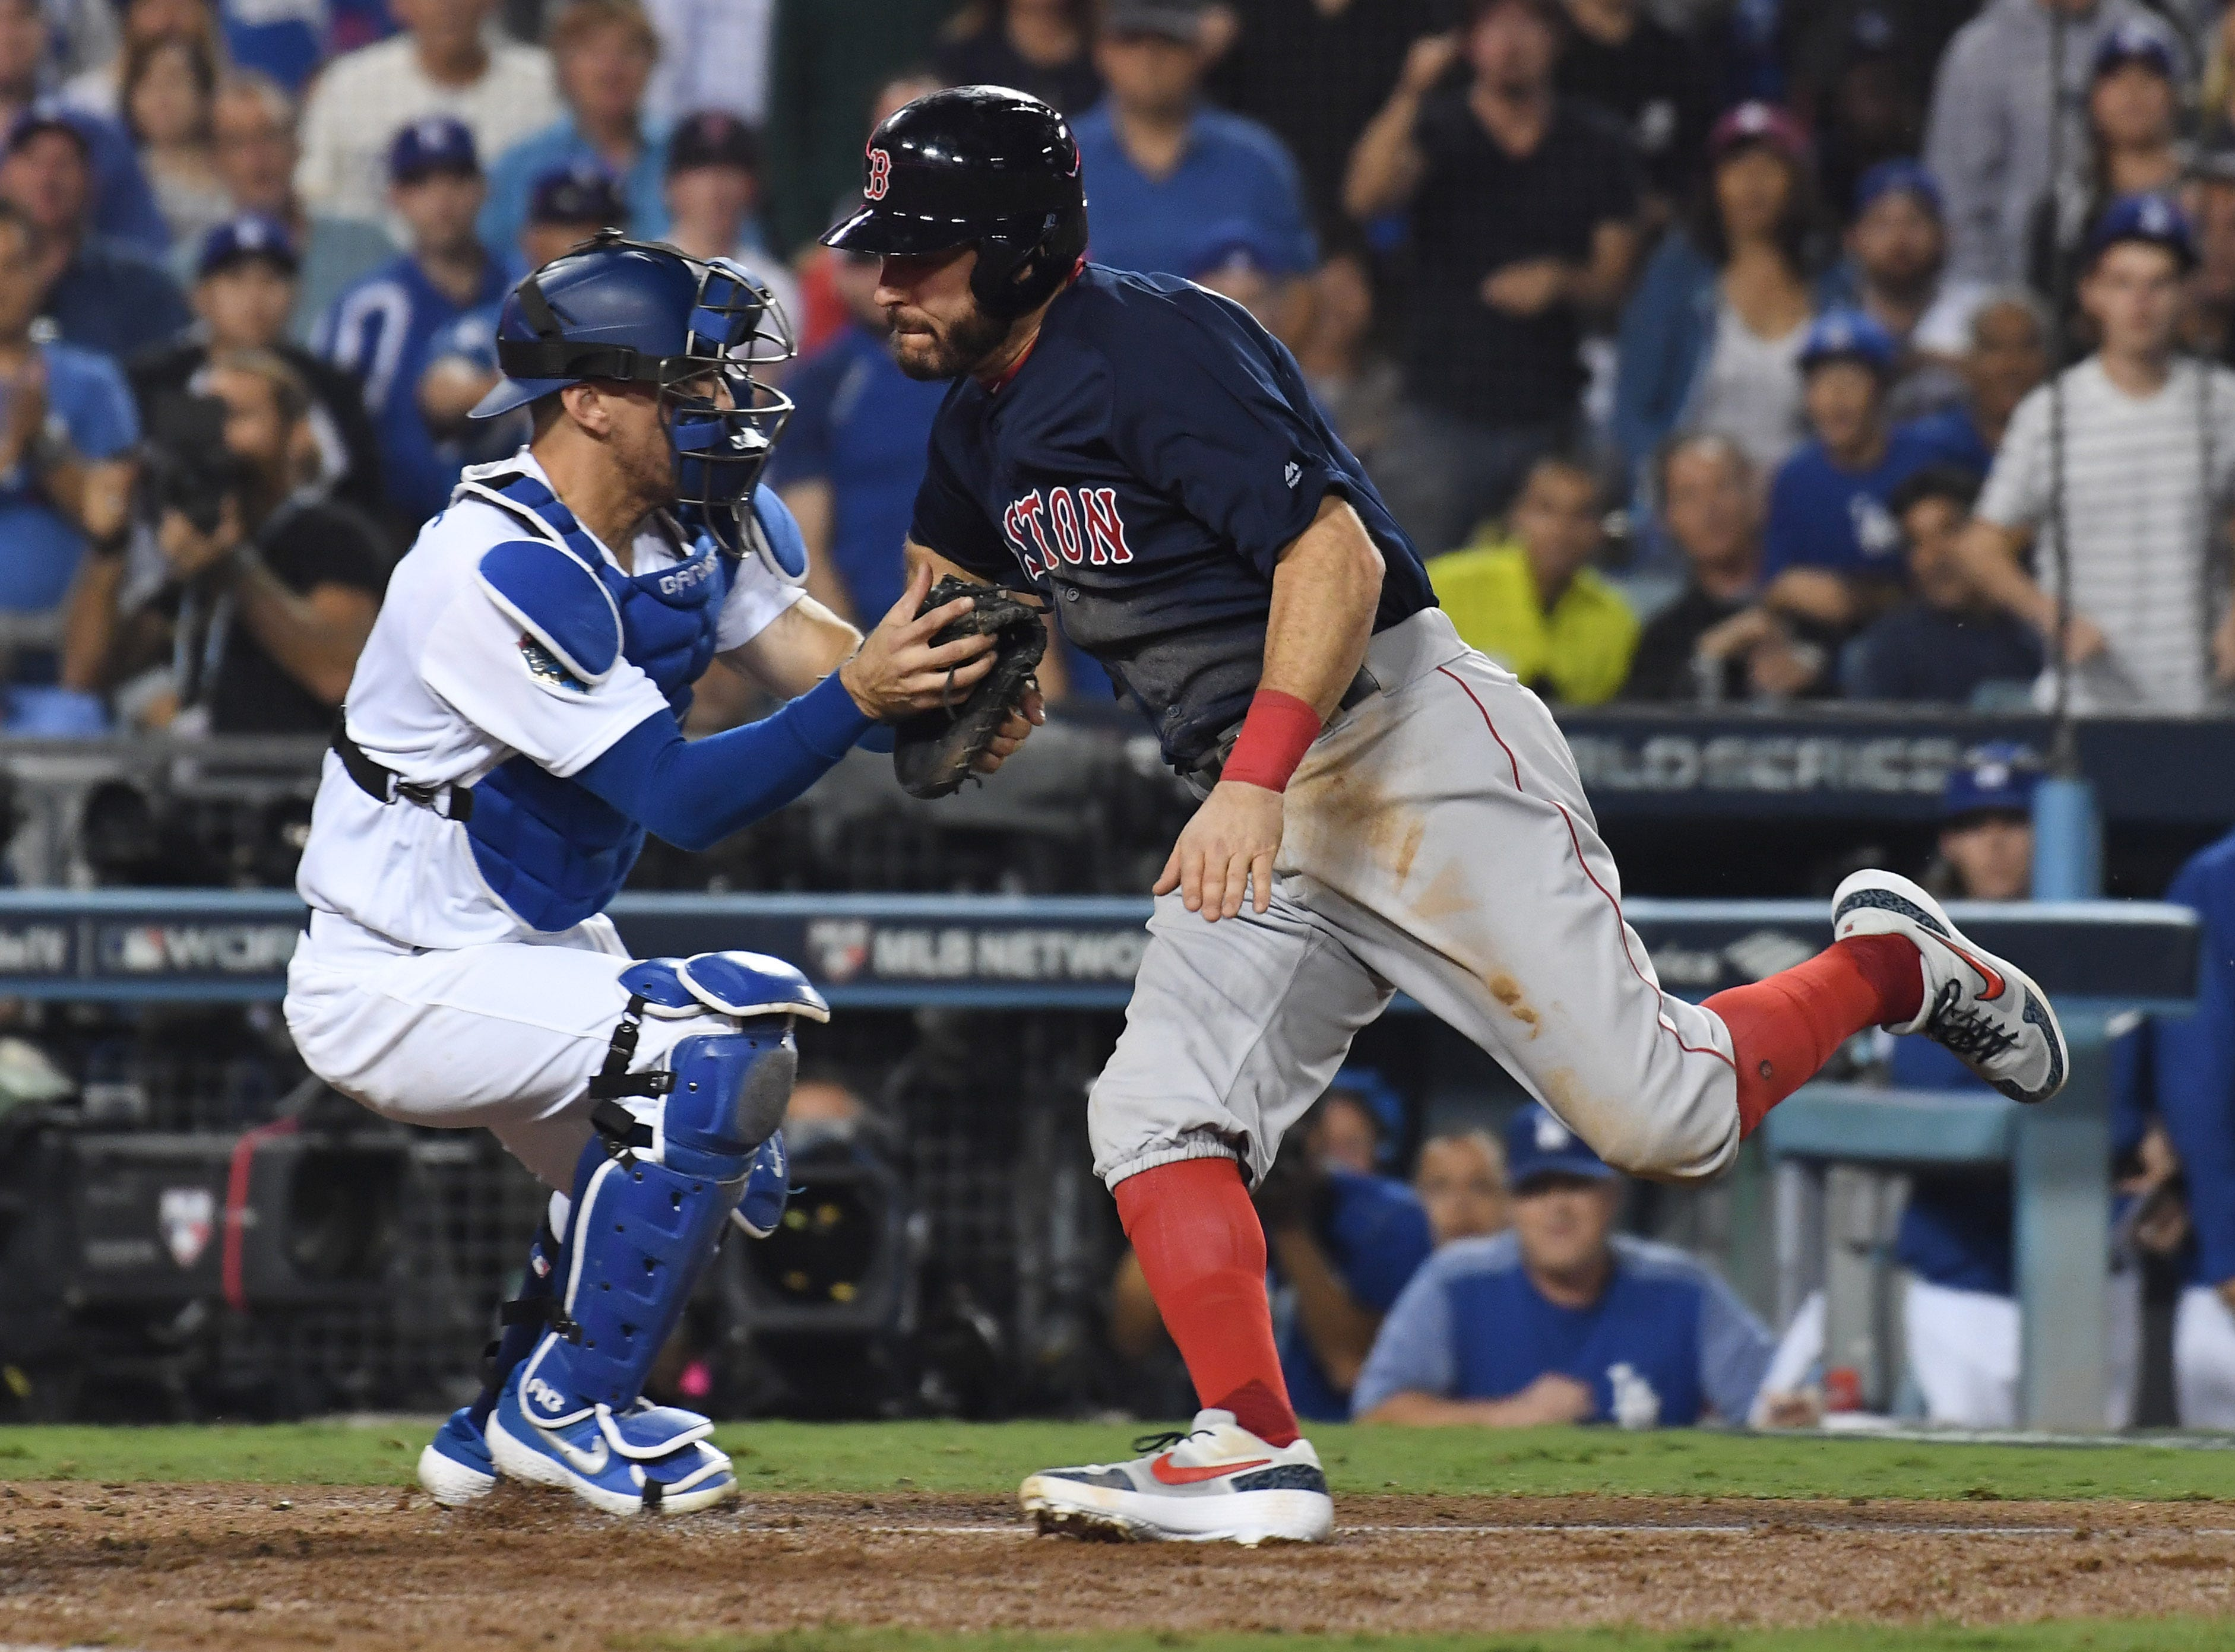 Game 3 at Dodger Stadium: Ian Kinsler is tagged out at home plate by Dodgers catcher Austin Barnes in the 10th.